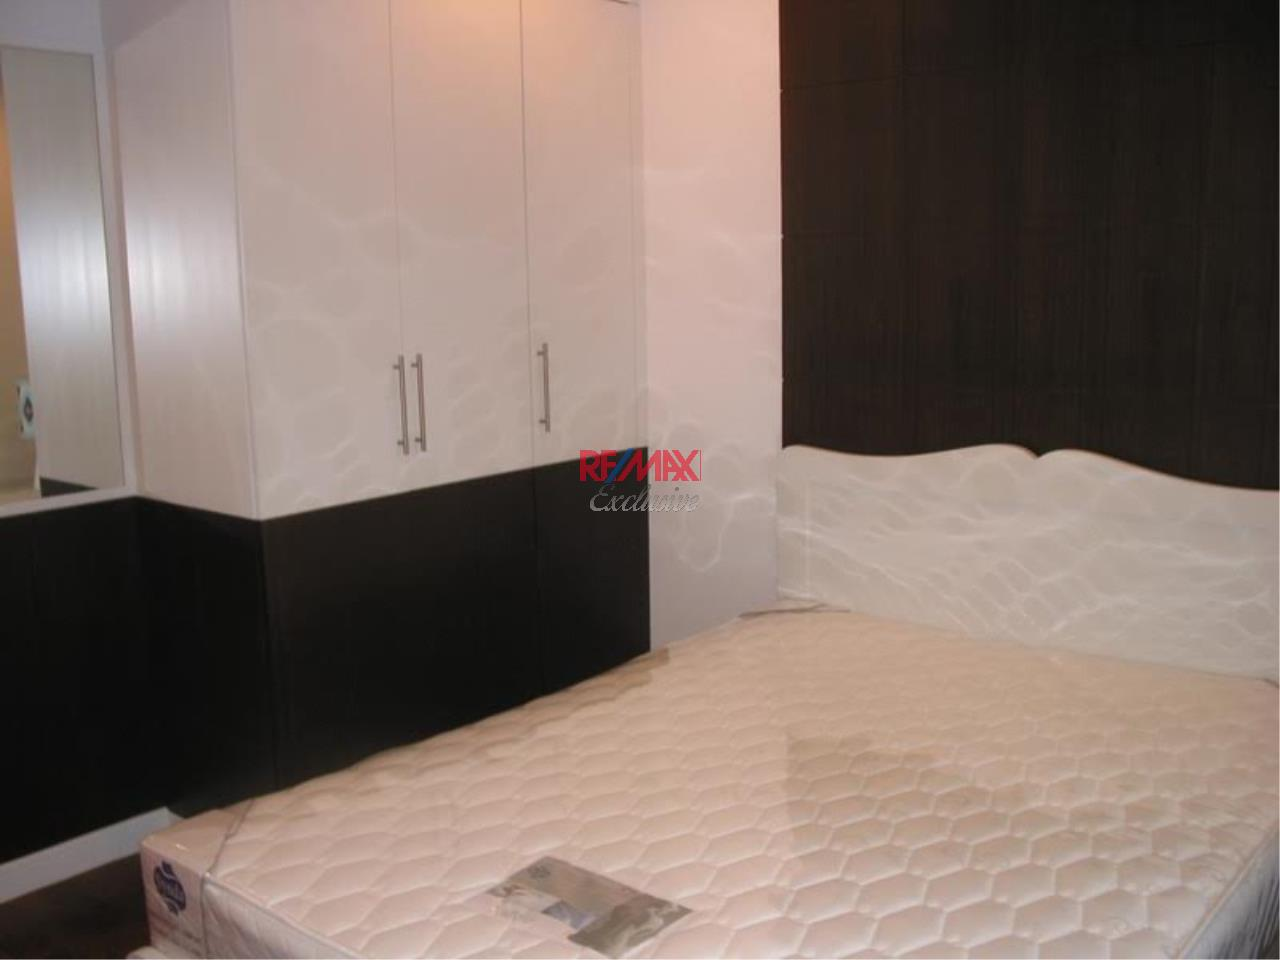 RE/MAX Exclusive Agency's 2 Bedrooms at Baan Siri24 For Rent 65,000 THB  6